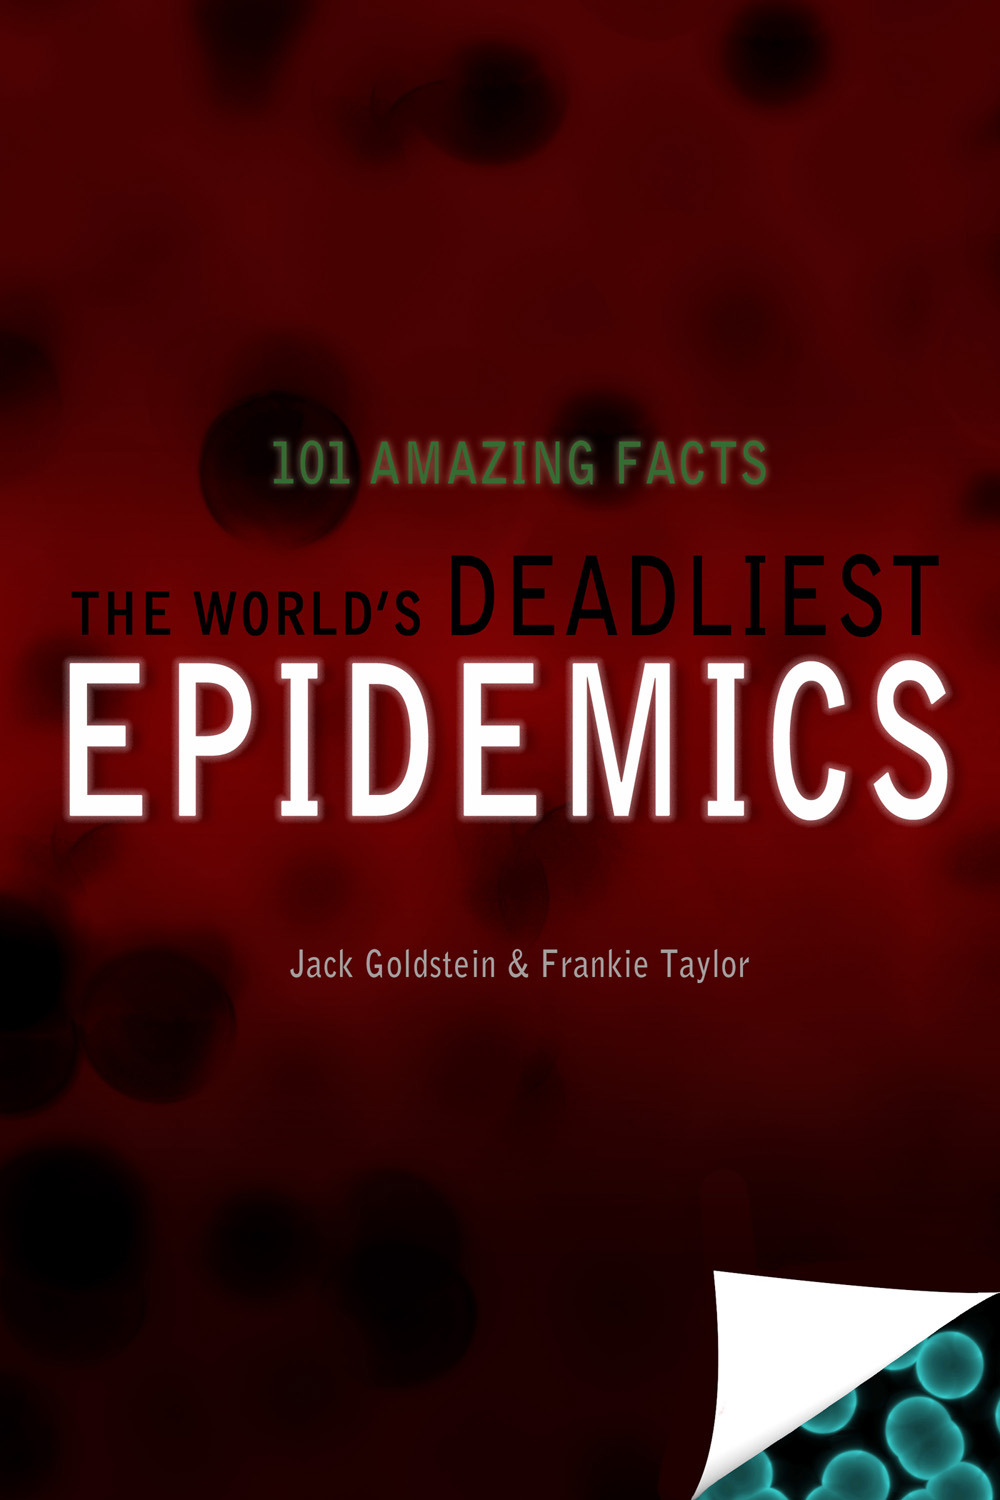 Goldstein, Jack - The World's Deadliest Epidemics, ebook